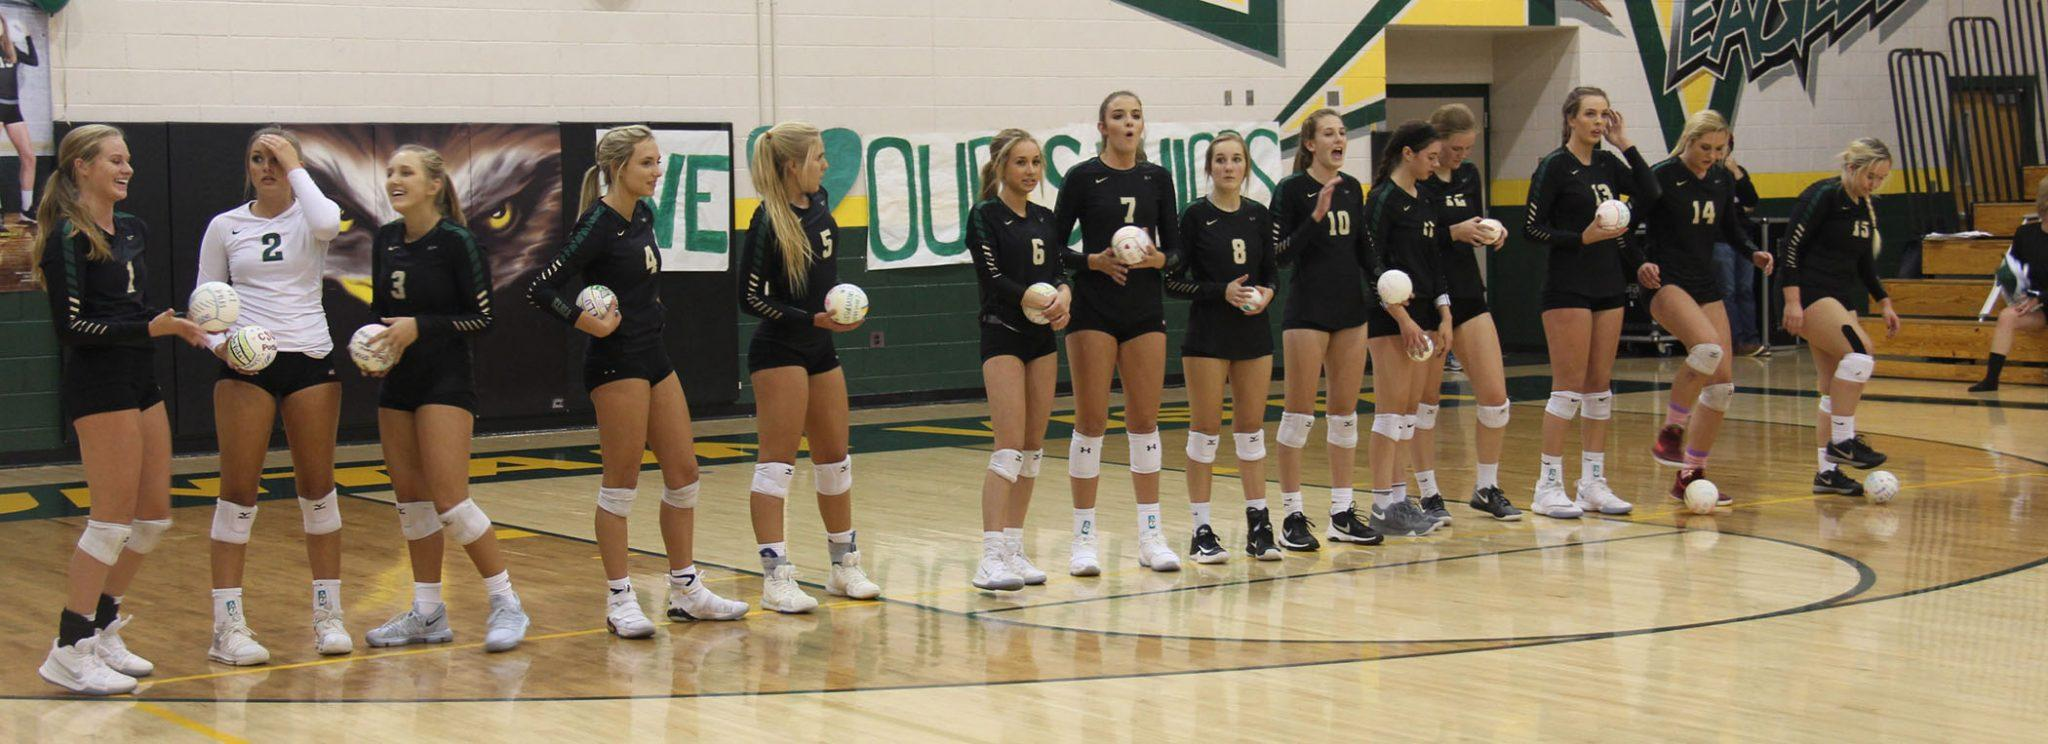 PHOTOS: VARSITY VOLLEYBALL SENIOR NIGHT